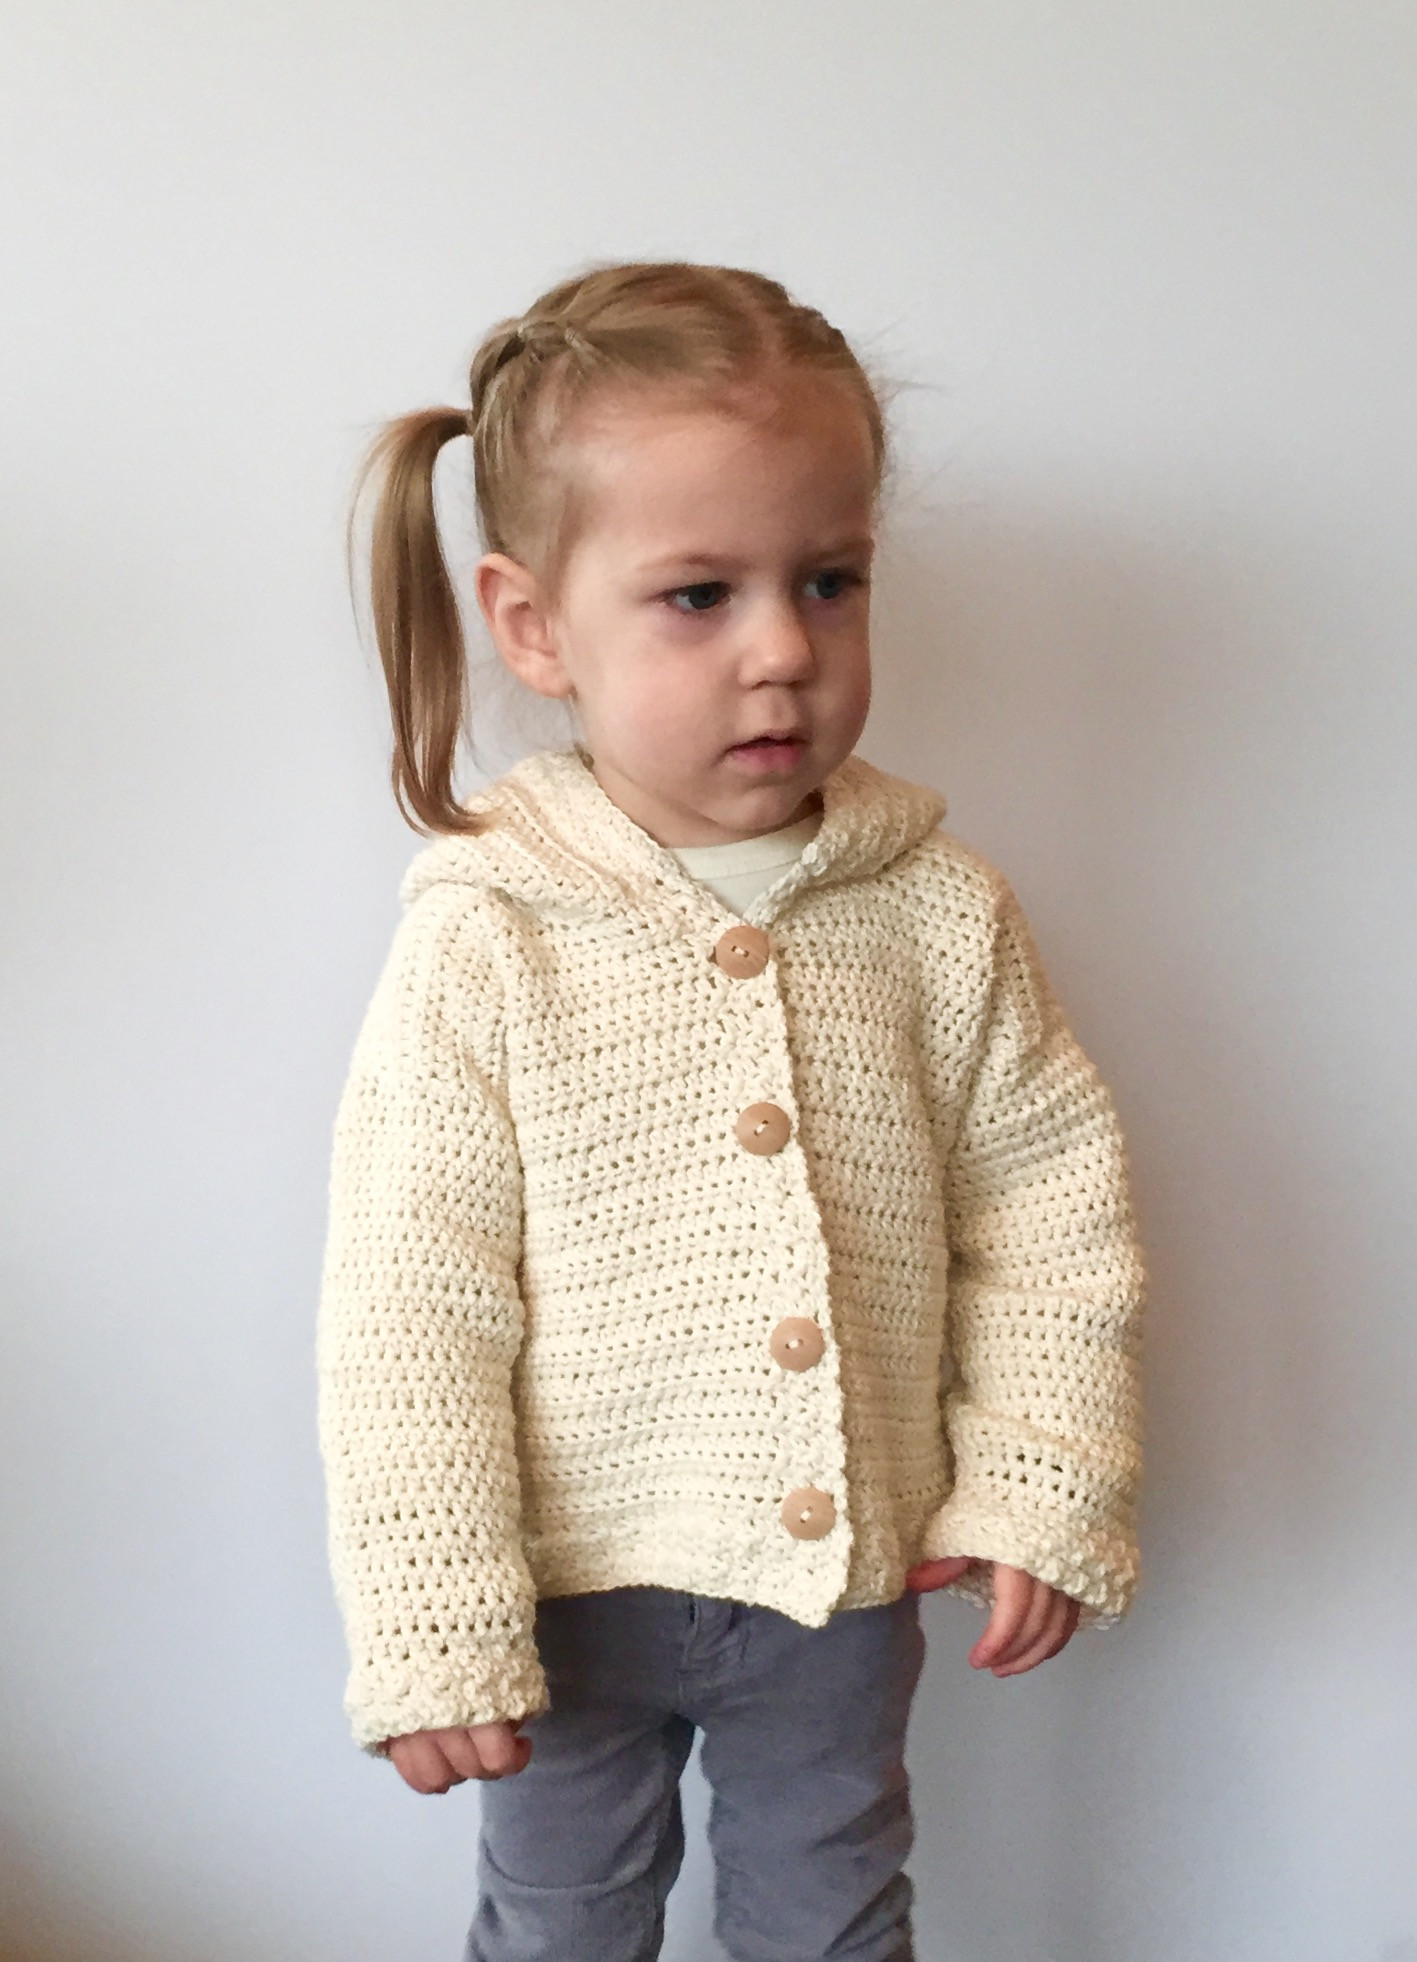 Crochet Baby Cardigan Luxury Lamb S Ear Baby Cardigan Crochet Pattern Of Amazing 49 Pics Crochet Baby Cardigan